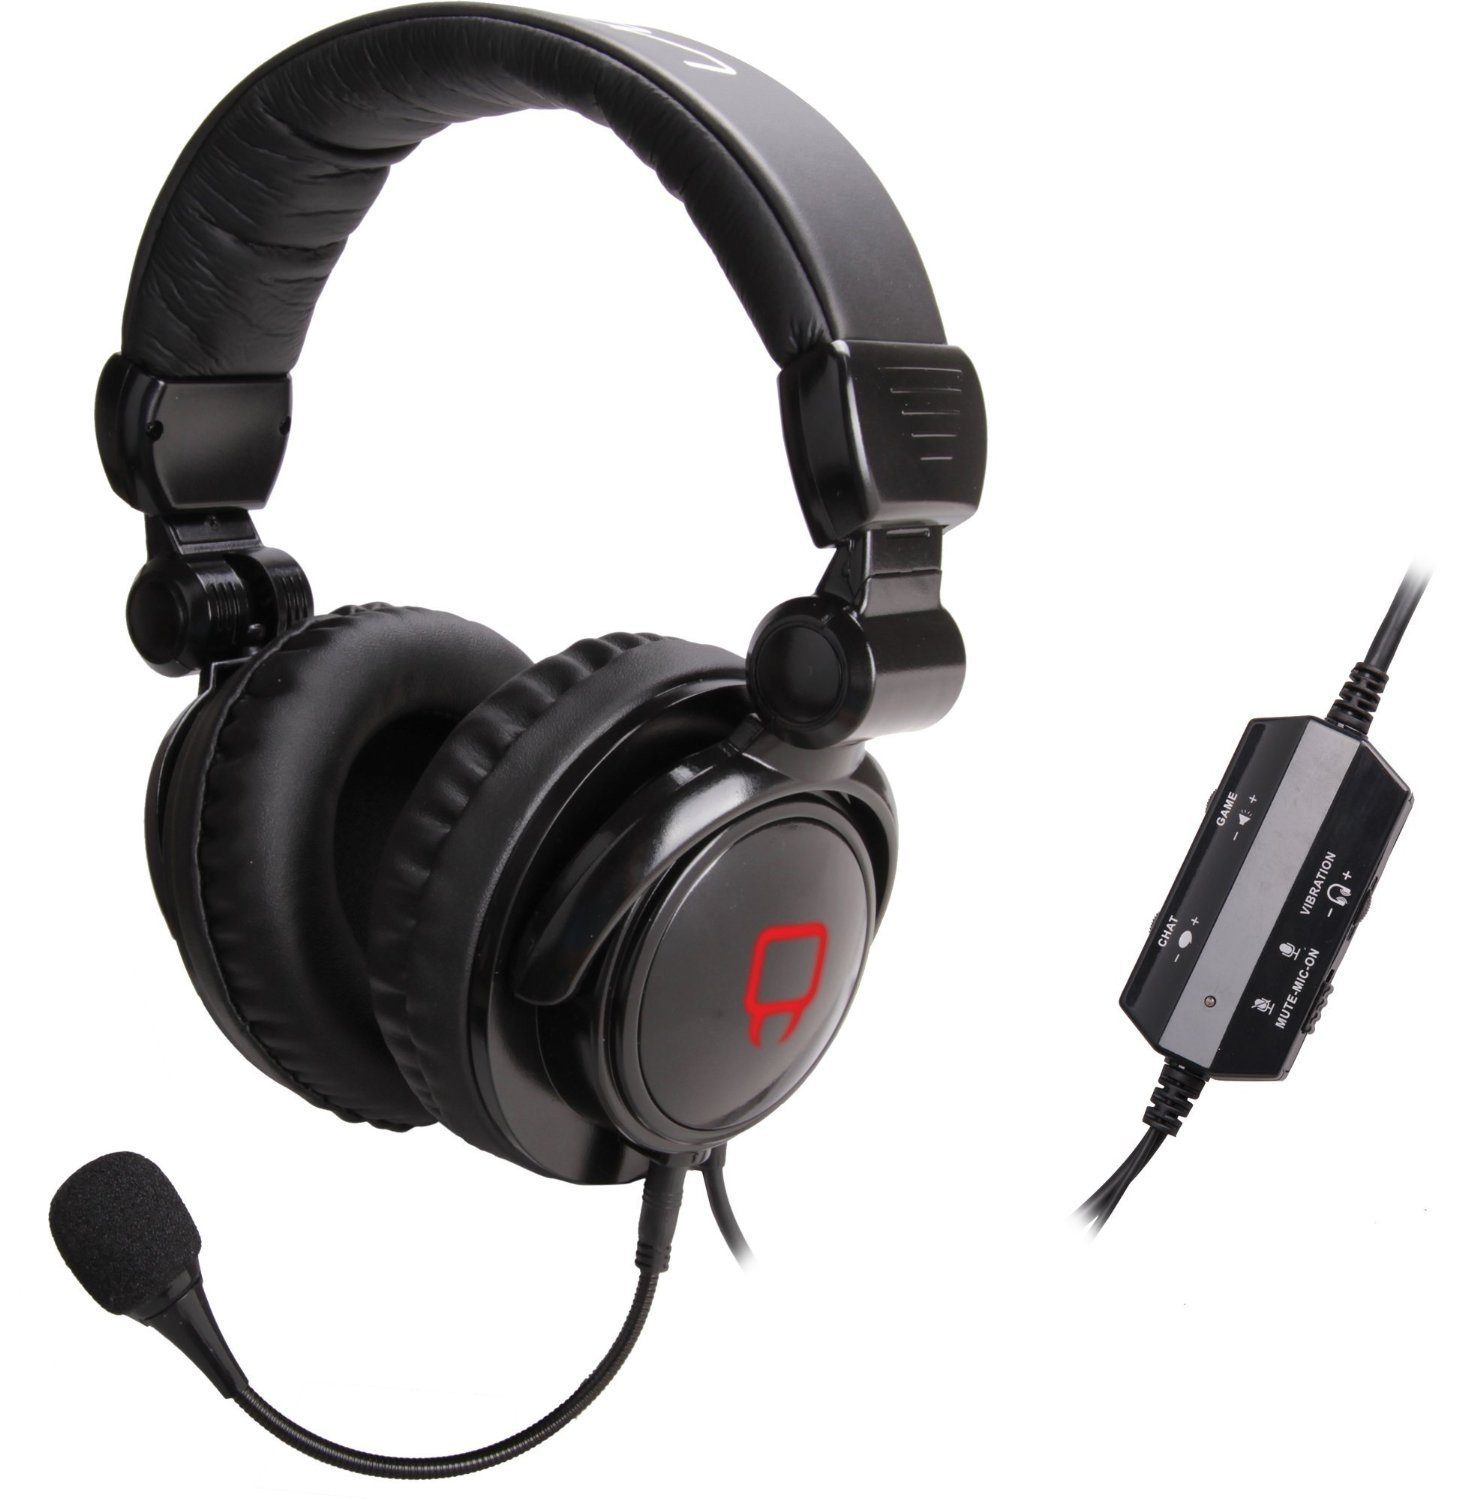 Snakebyte Vibration Headset XT 4+ »(PS4 X360 PS3 PC)«